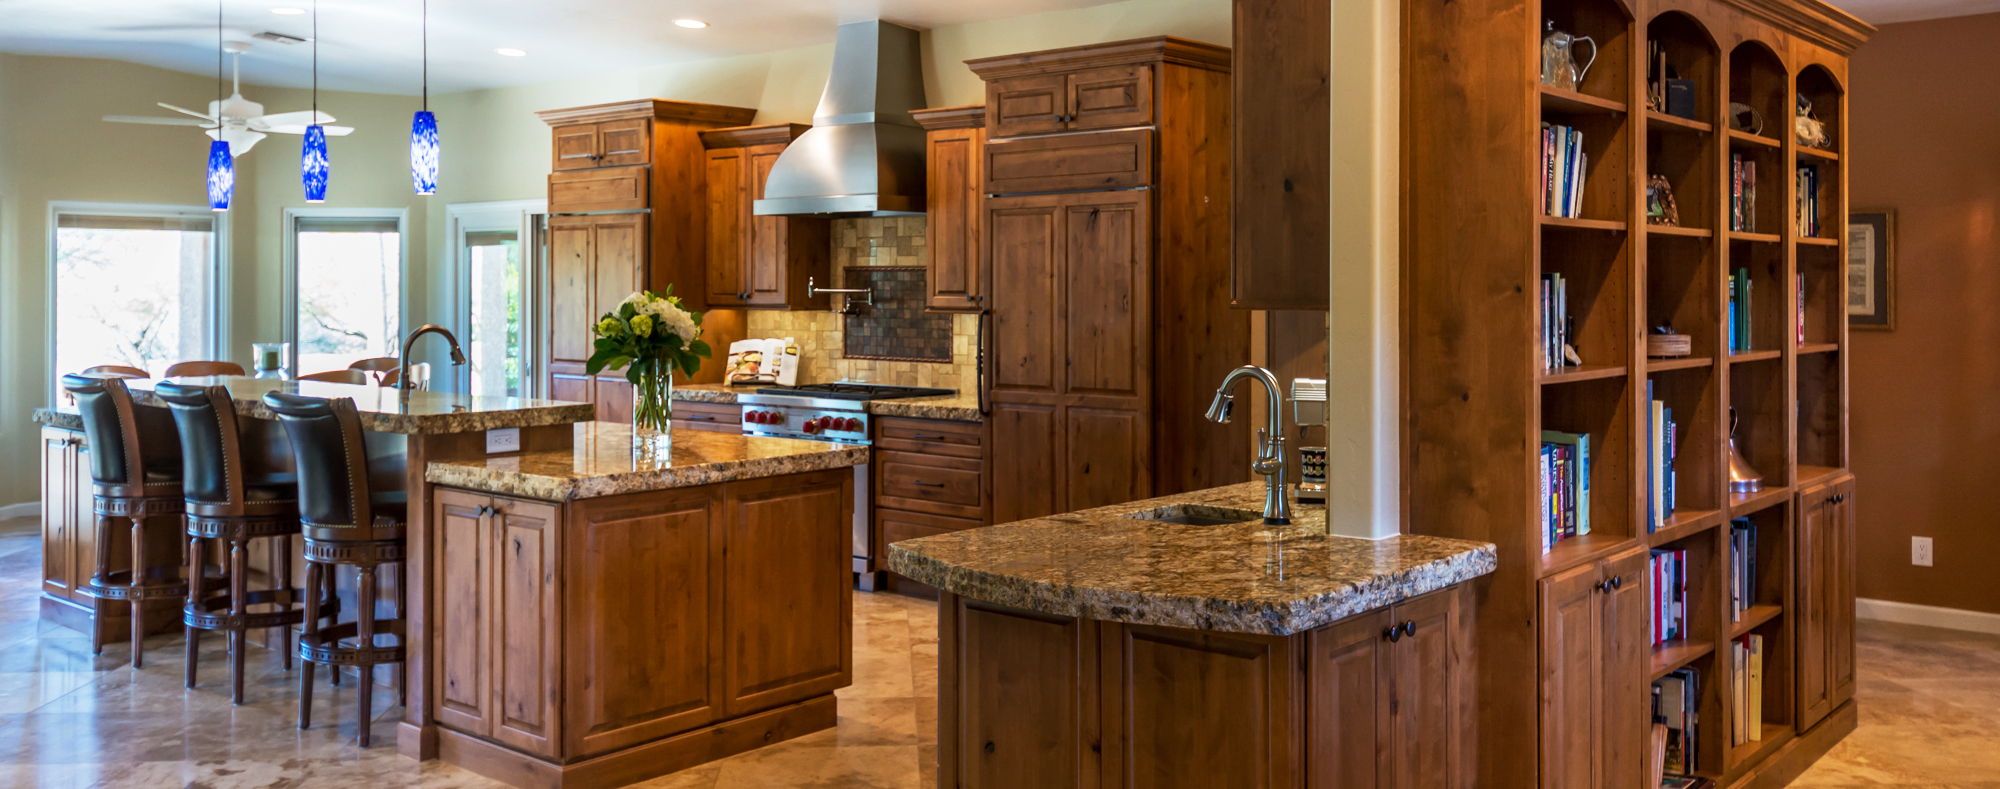 canyoncabinetry select kitchen design